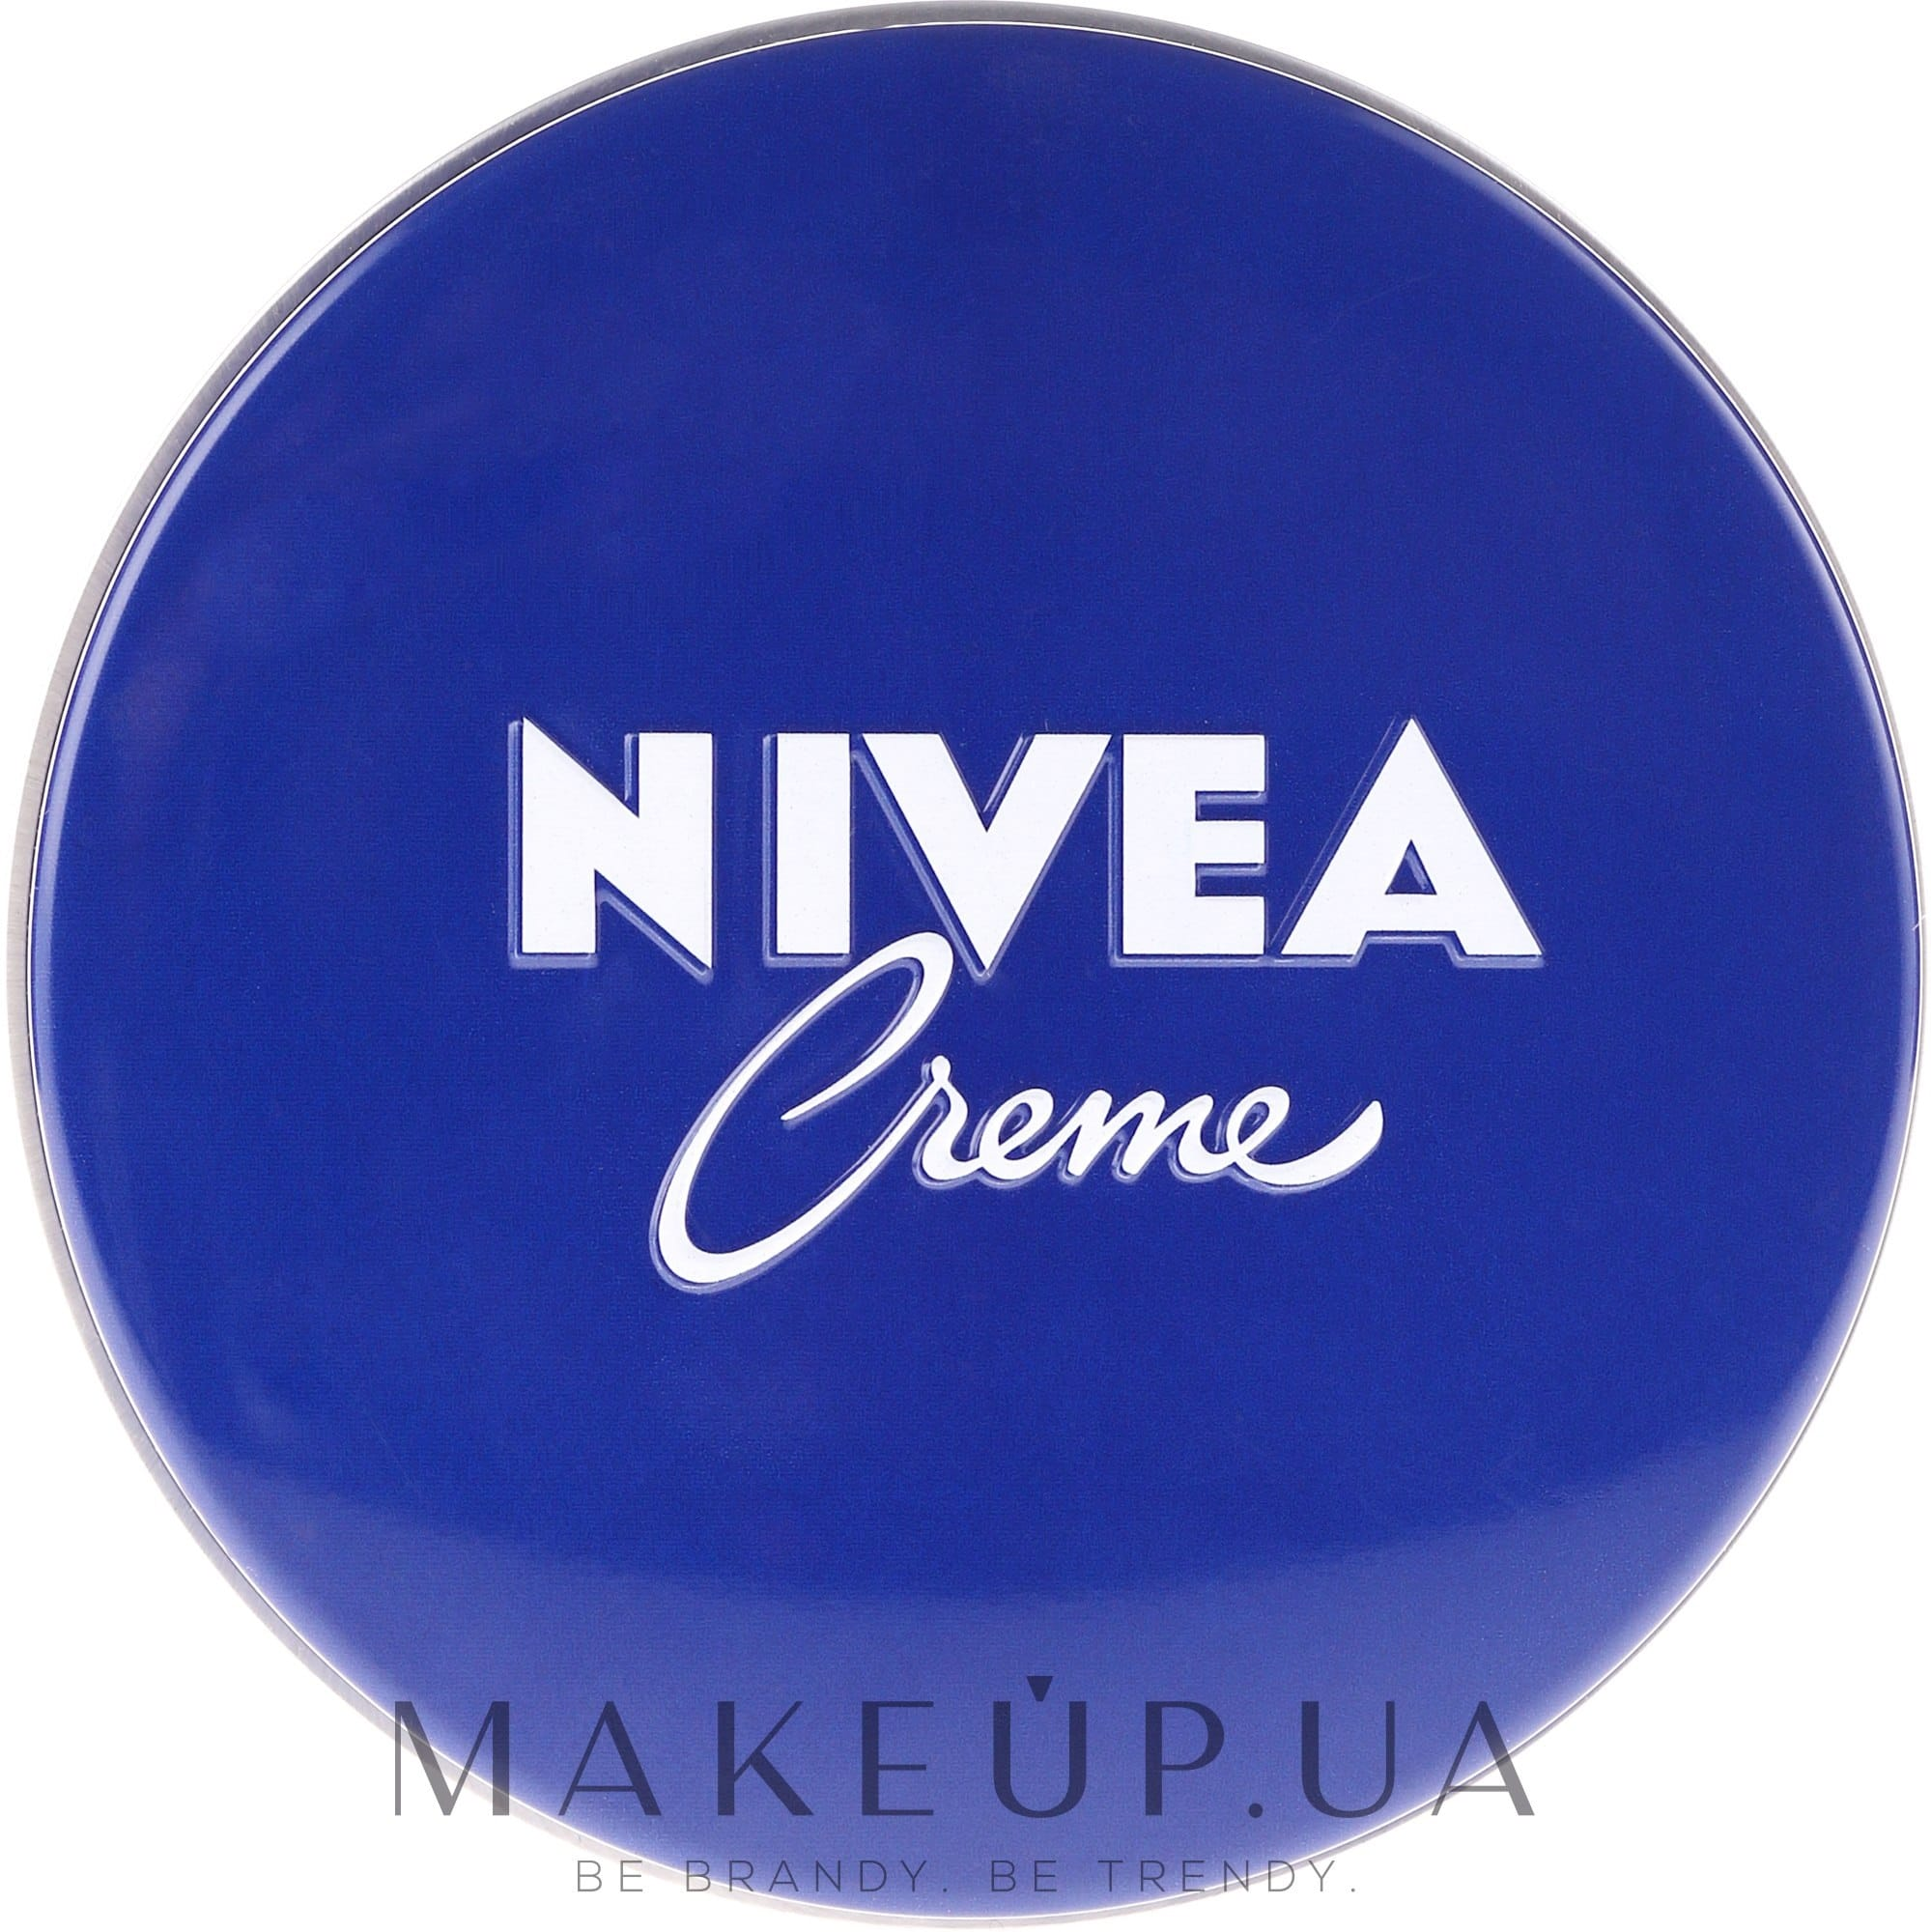 Essays on Nivea